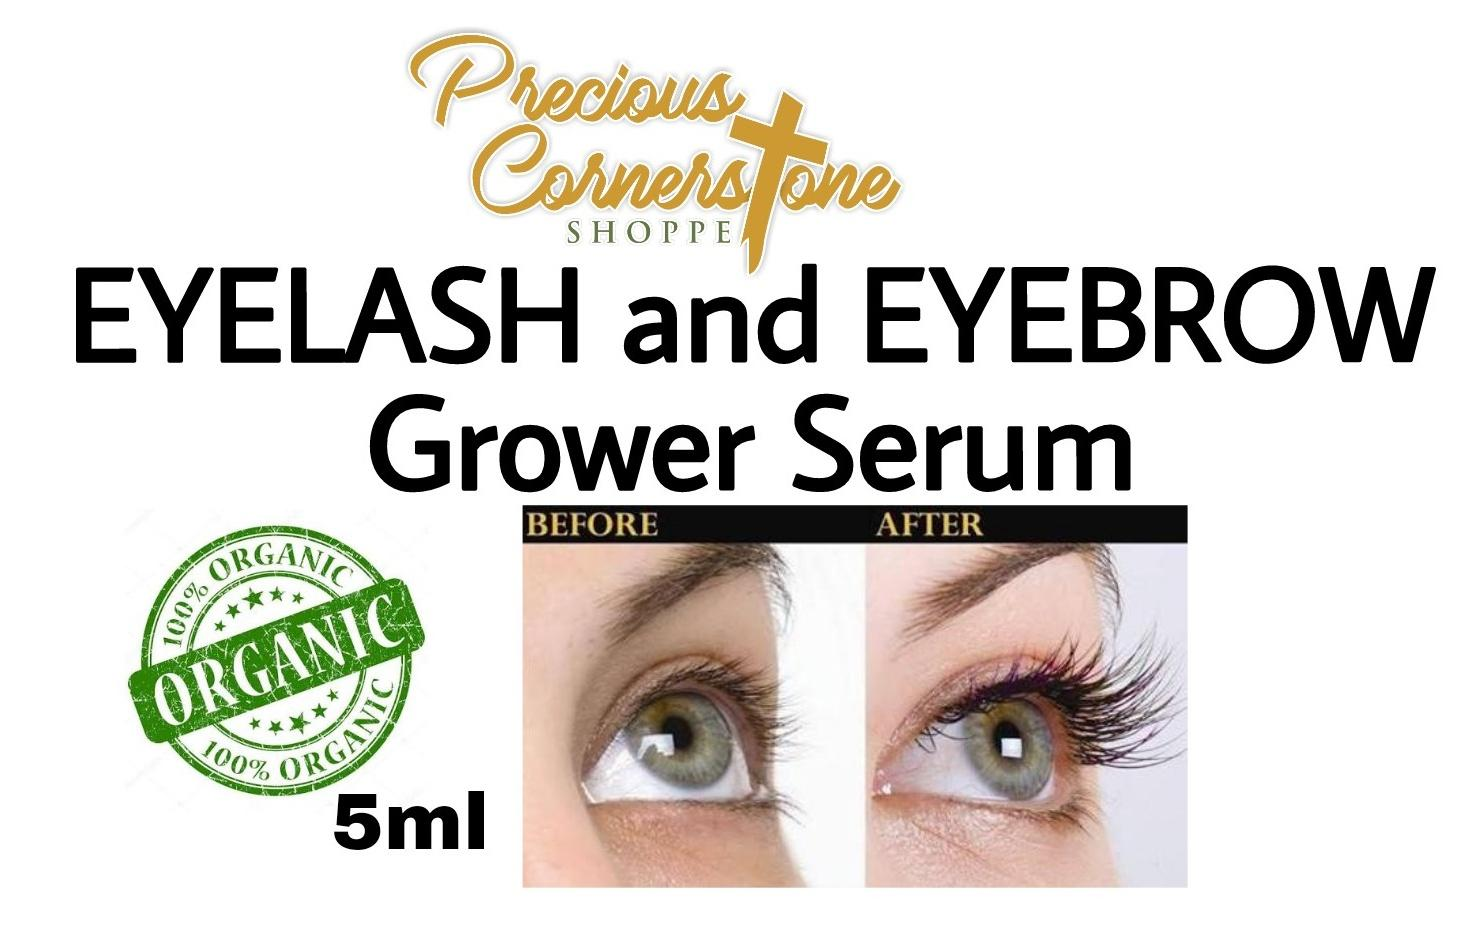 EYELASH and EYEBROW GROWER SERUM 5ml Philippines